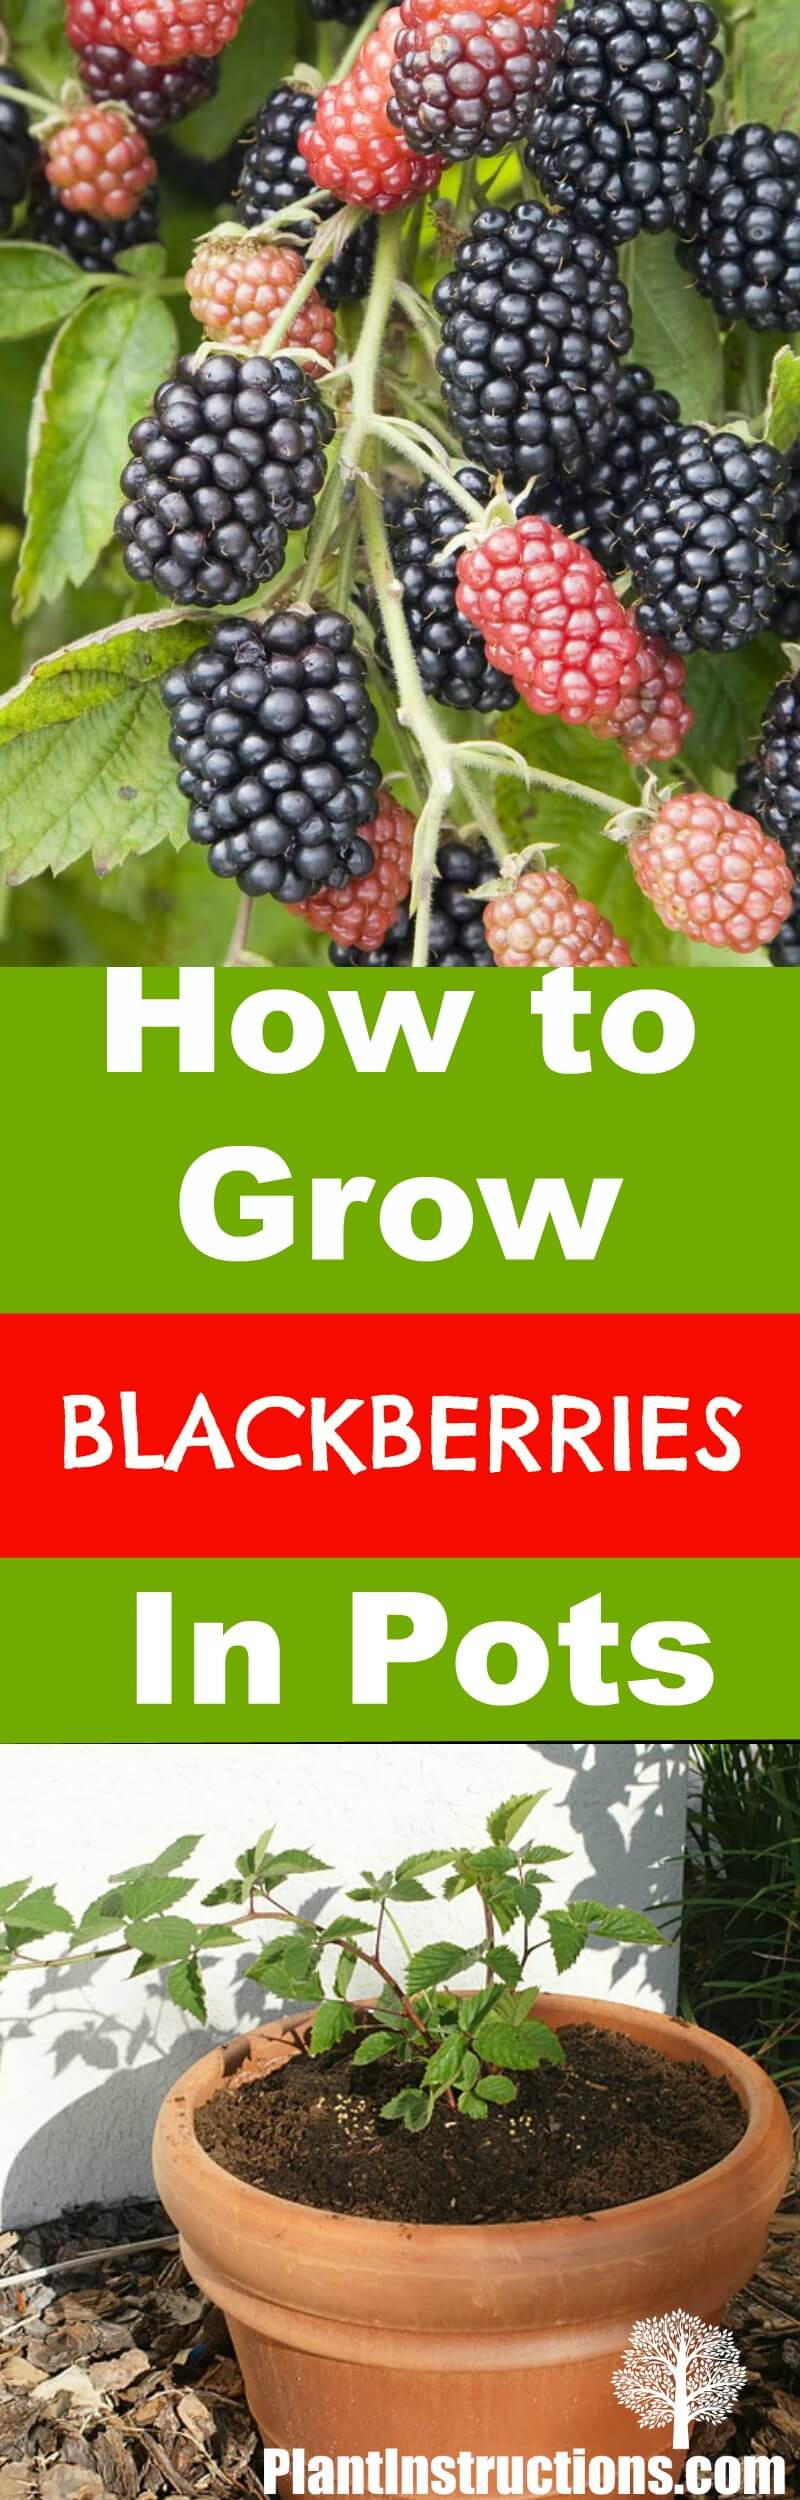 How to Grow Blackberries in Pots